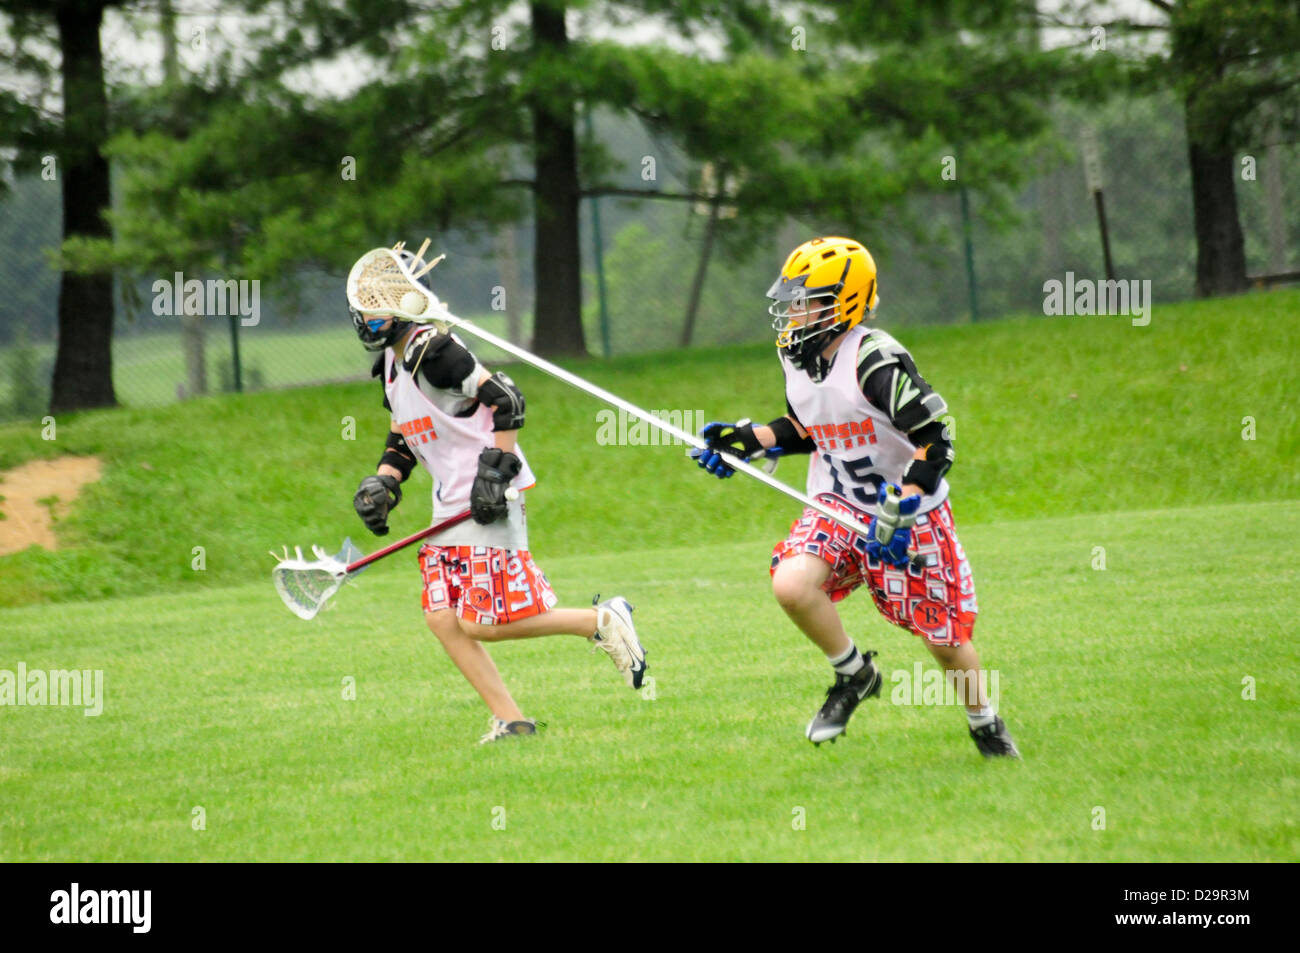 Lacrosse Players - Maryland - Stock Image